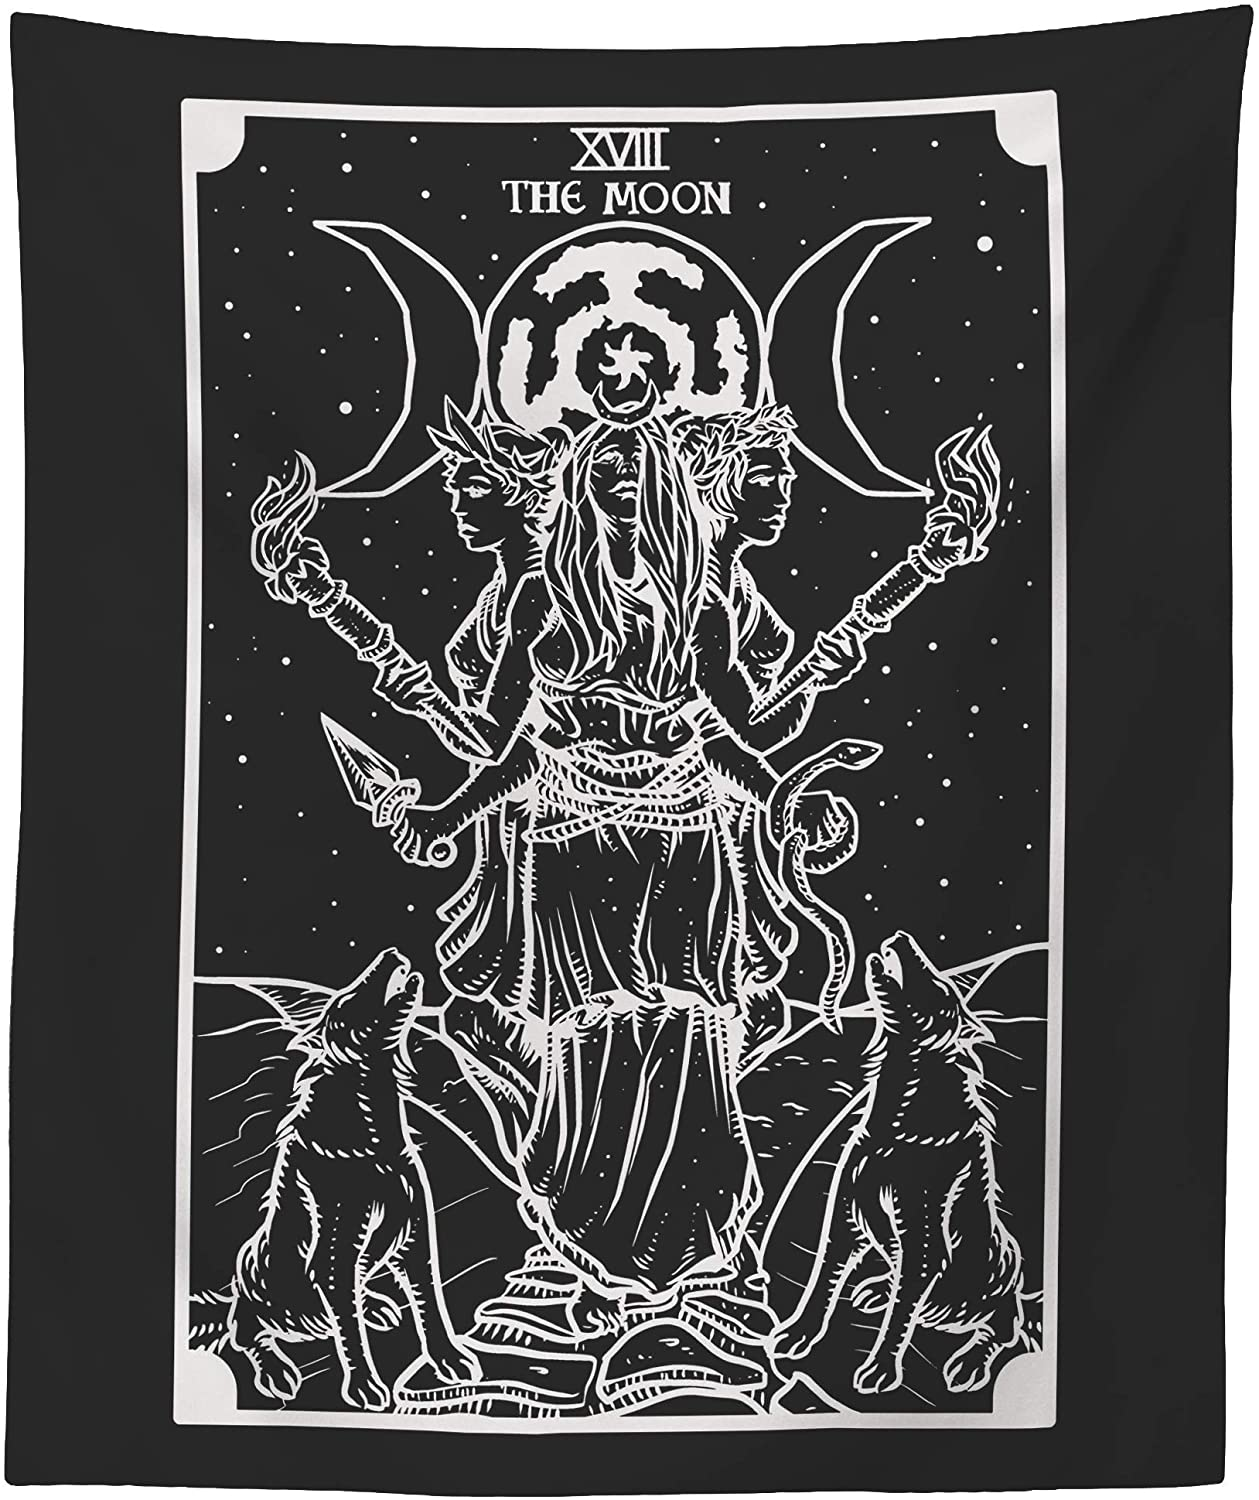 The Goddess Hecate Tarot Card Black - Tapestry White Max 46% OFF Inexpensive Triple